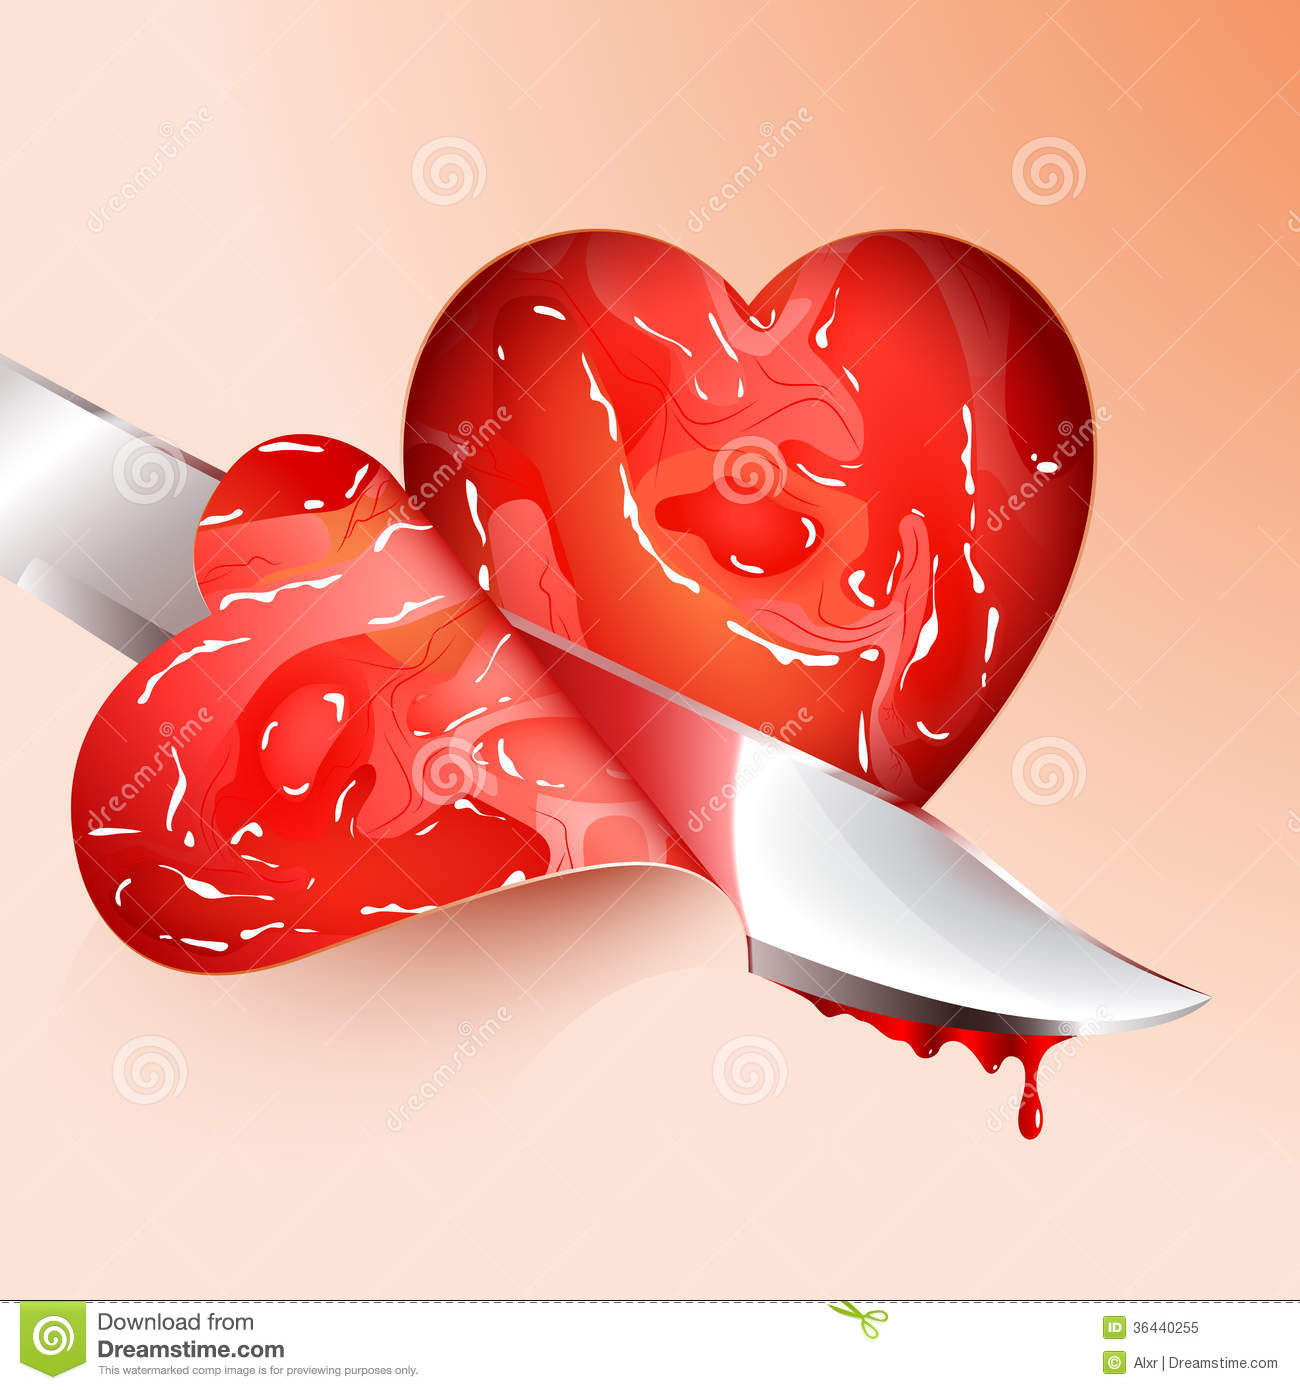 Cutting meat shape heart stock vector  Illustration of blood